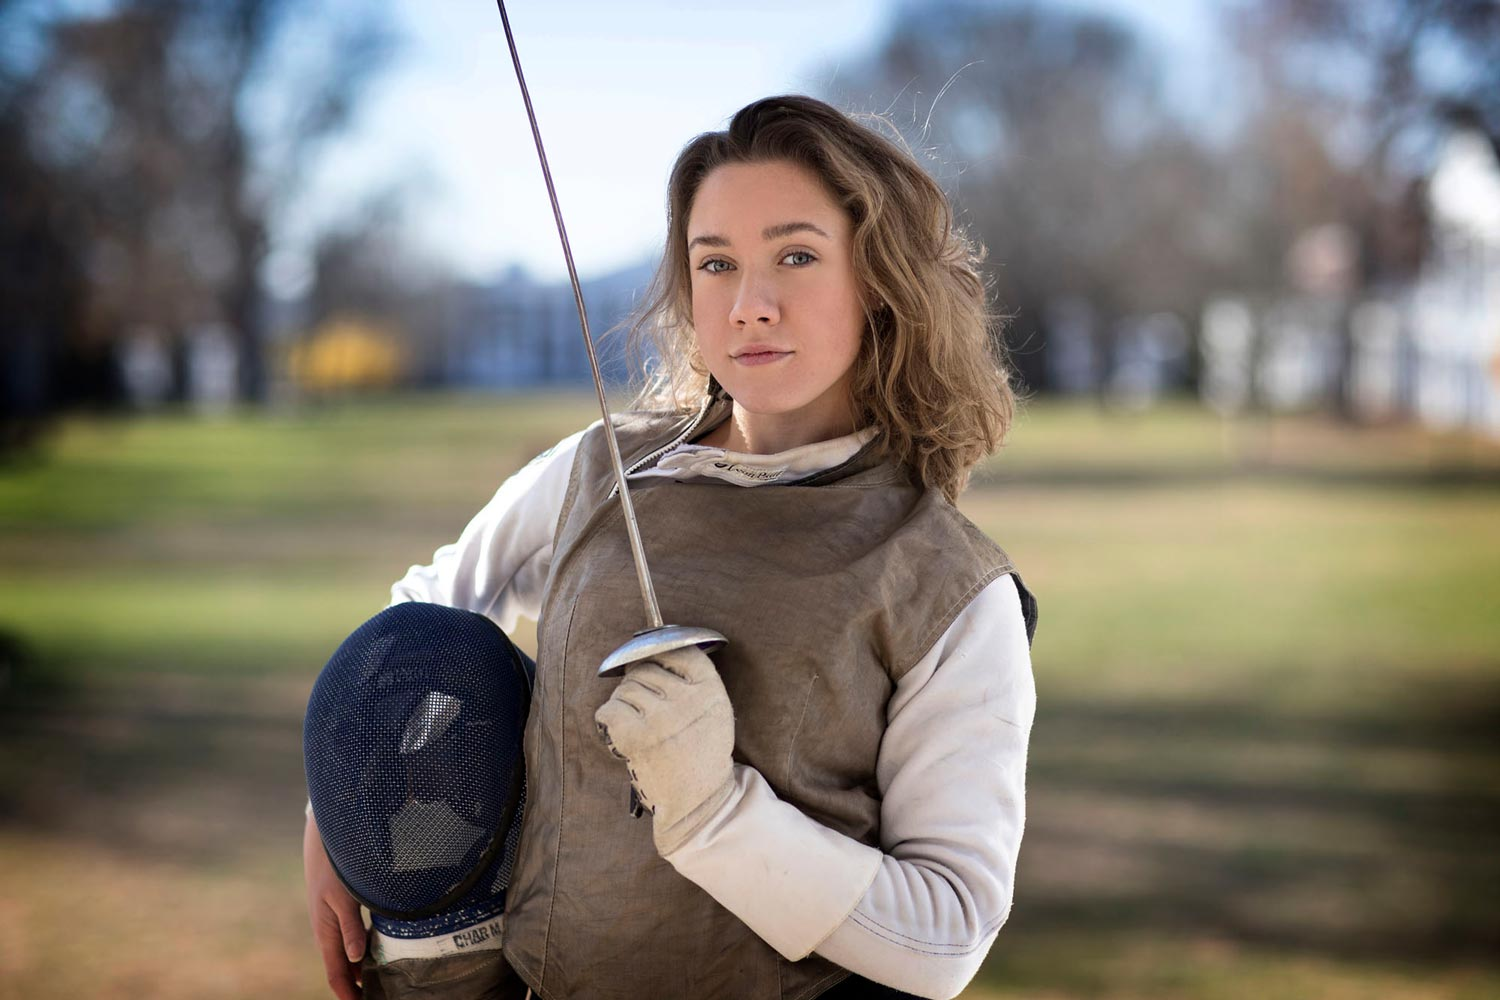 In addition to competing herself, Grayson Katzenbach is a fencing coach and referee for the U.S. Fencing Association.